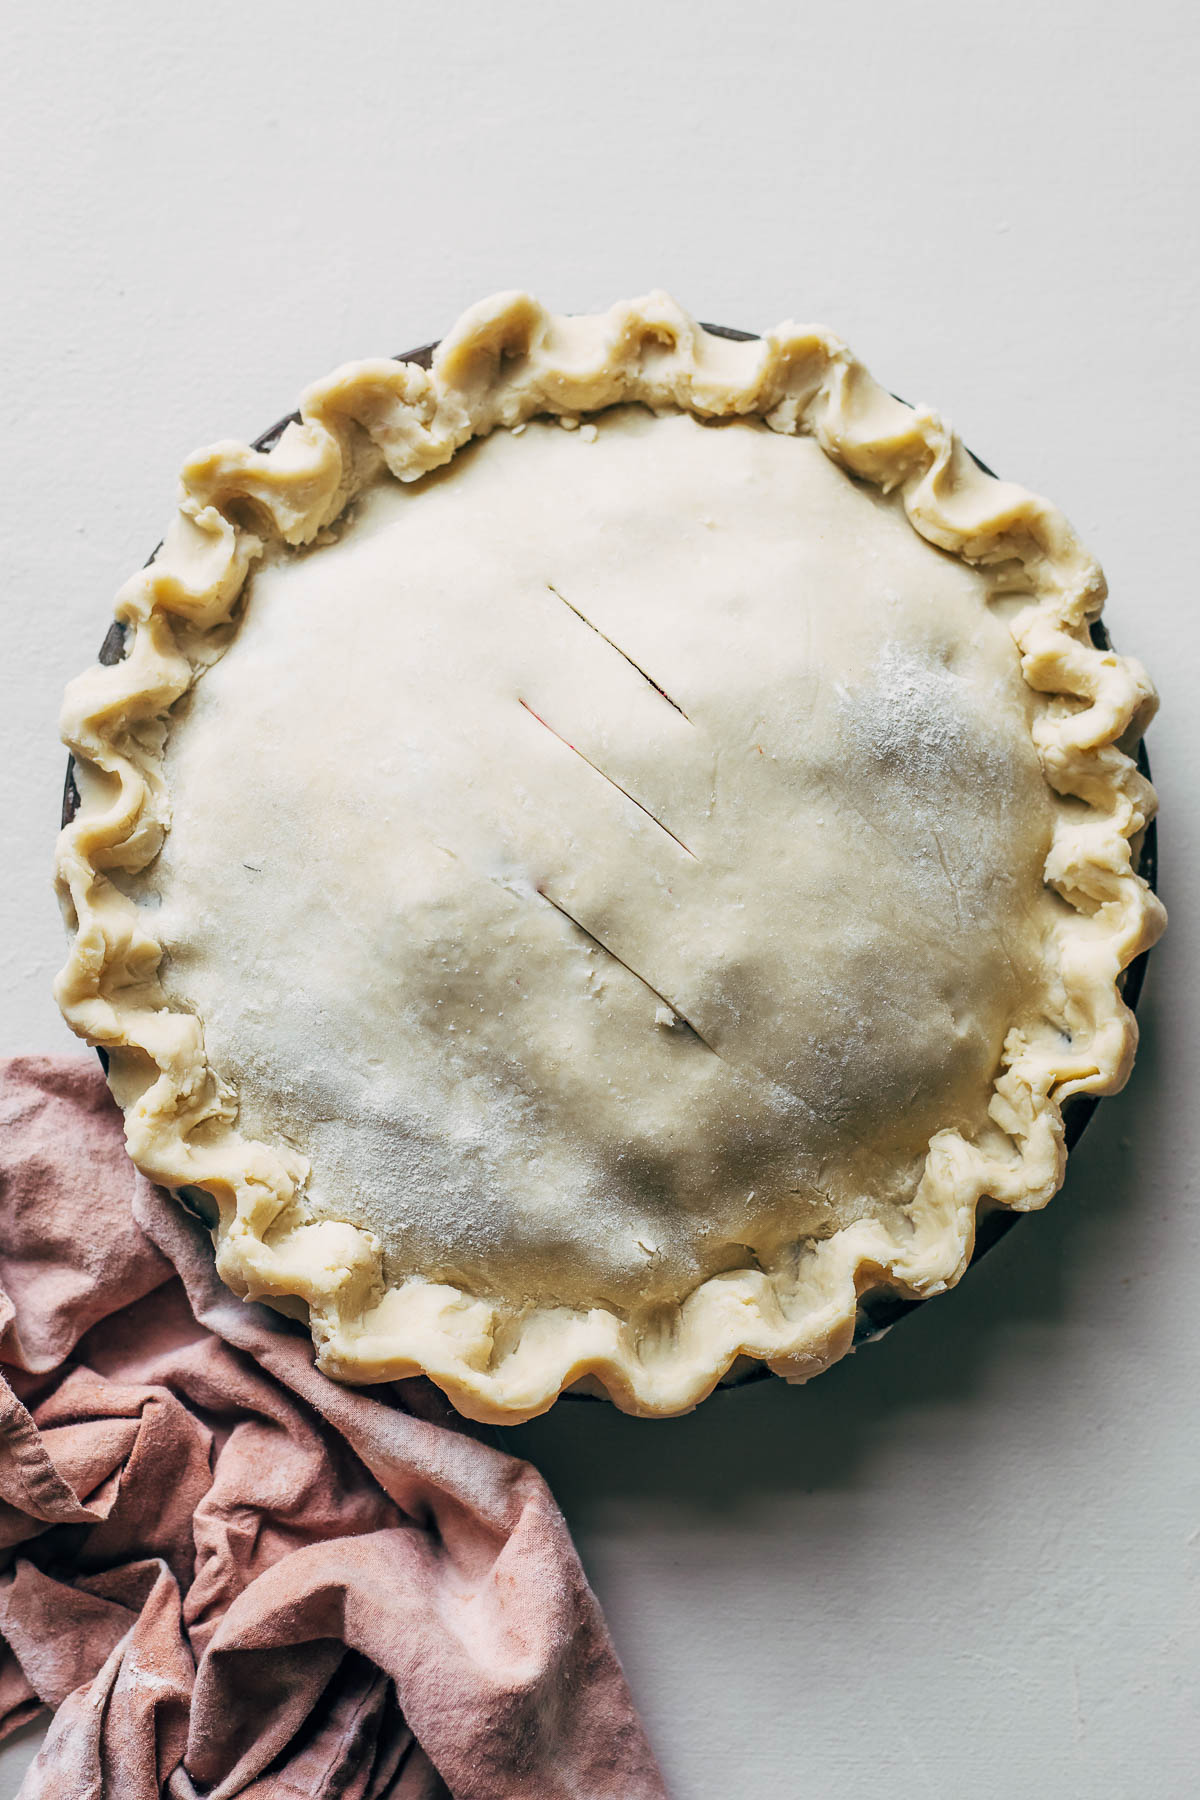 An unbaked pie with vegan pie dough and a crumpled pink linen on a white surface.